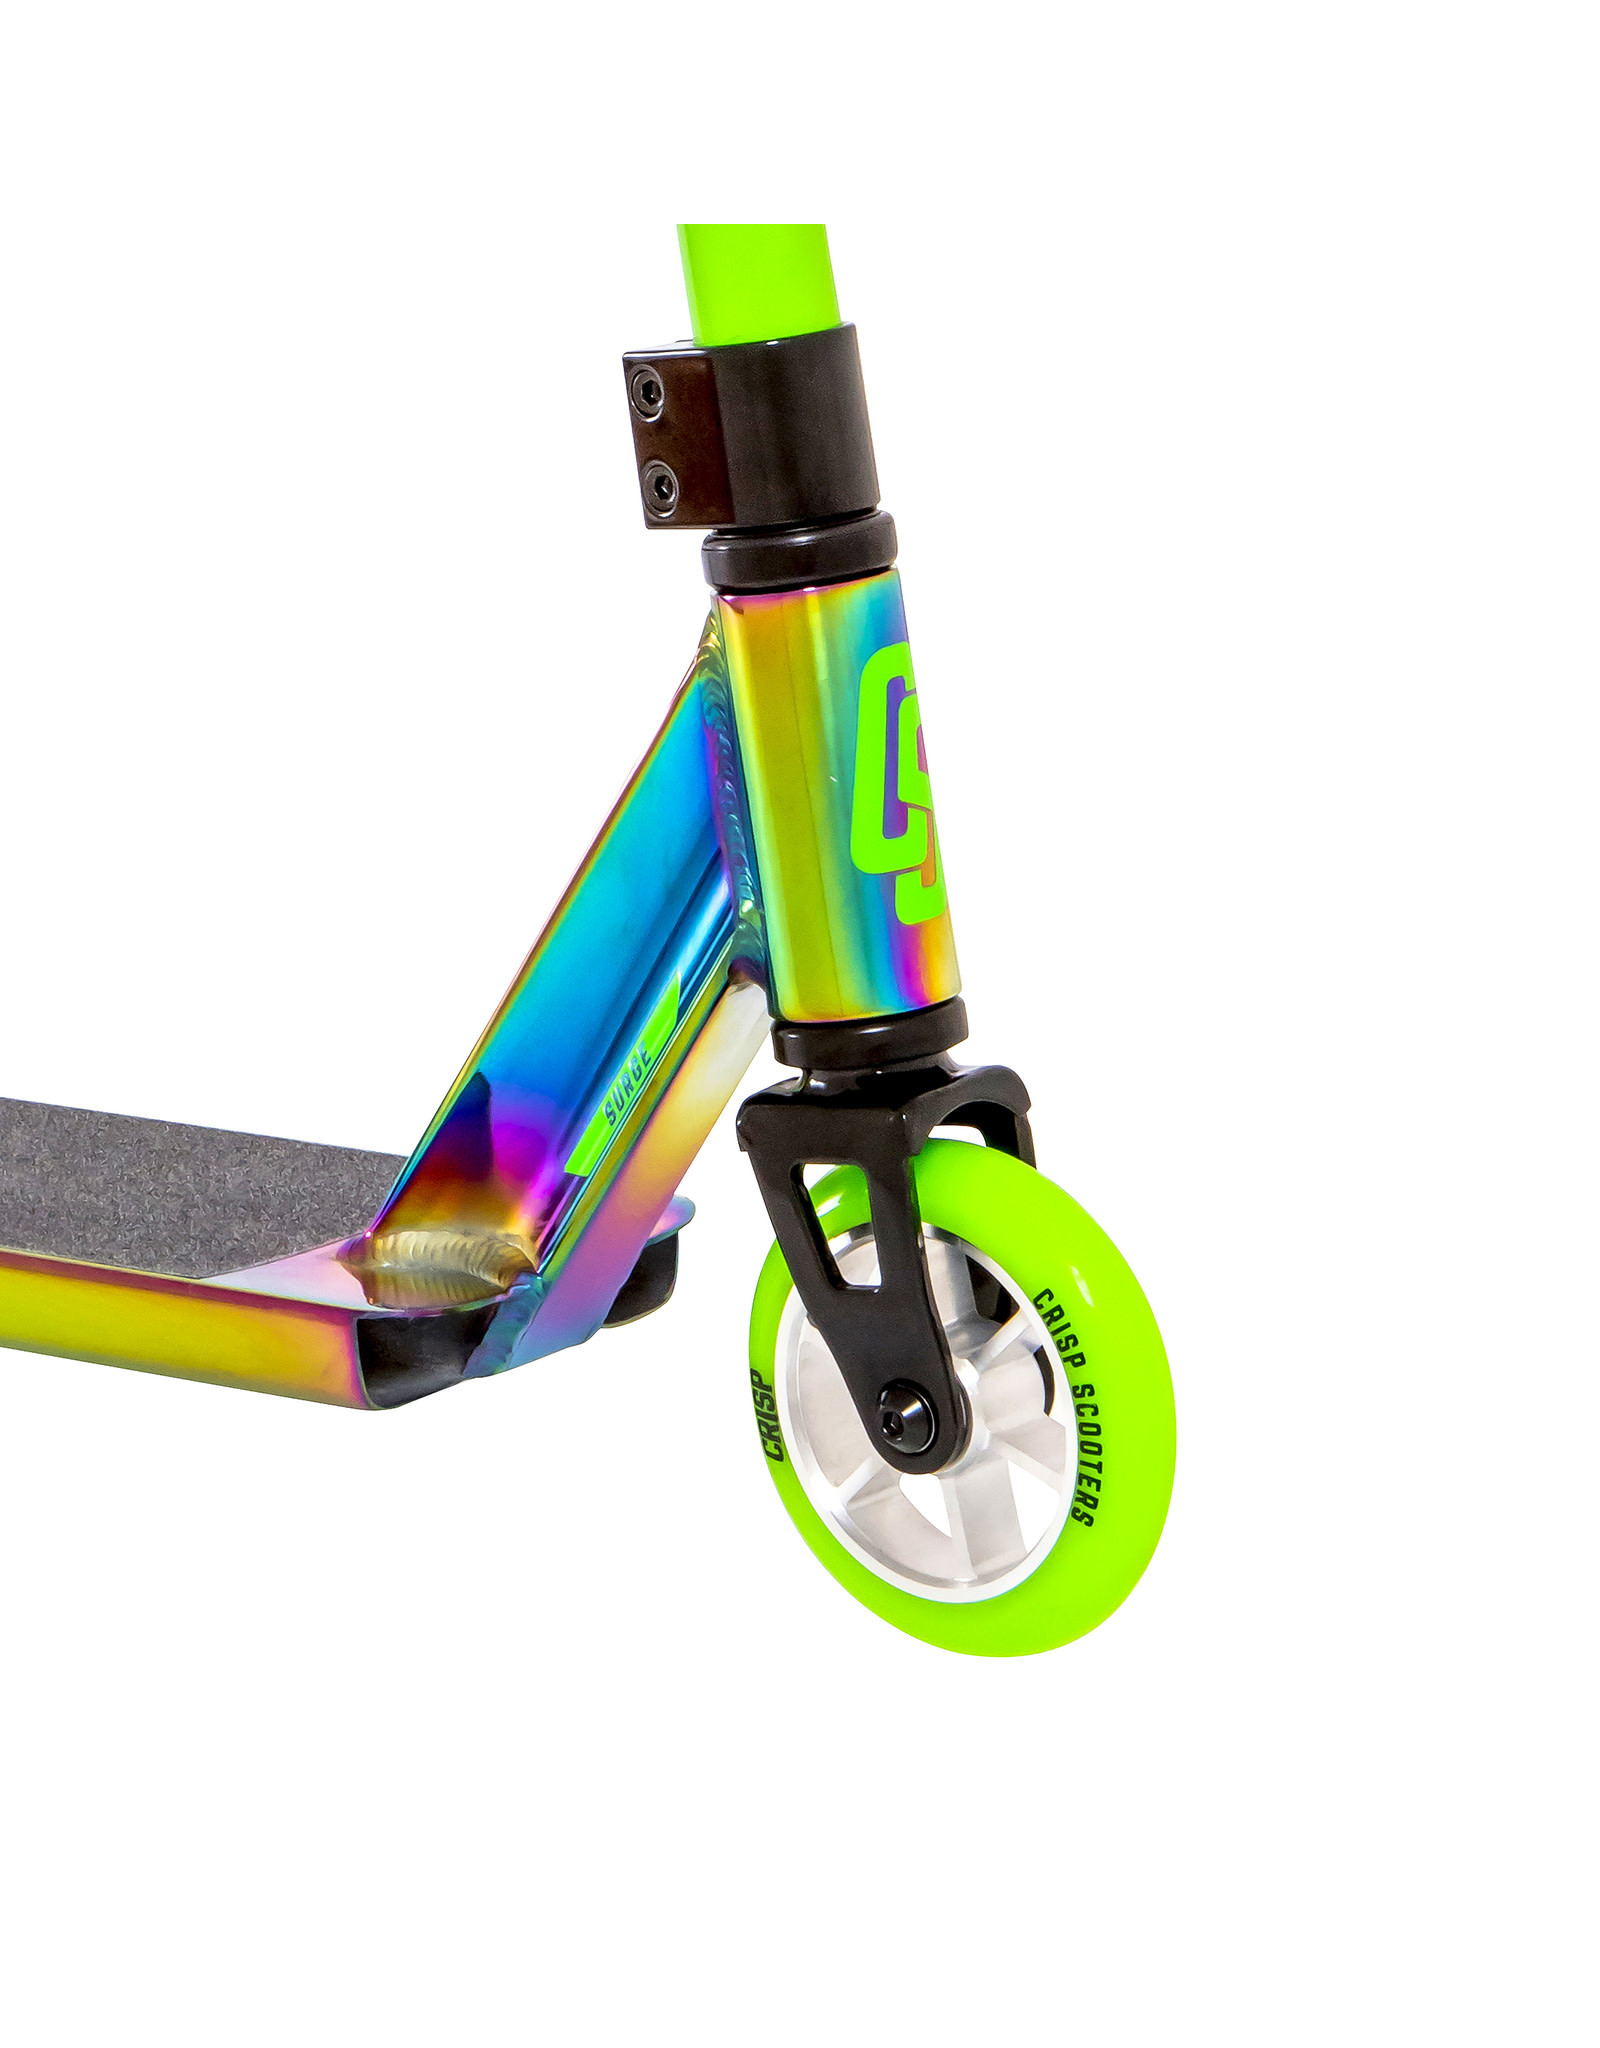 CRISP Crisp Surge Scooter Oil Slick Green